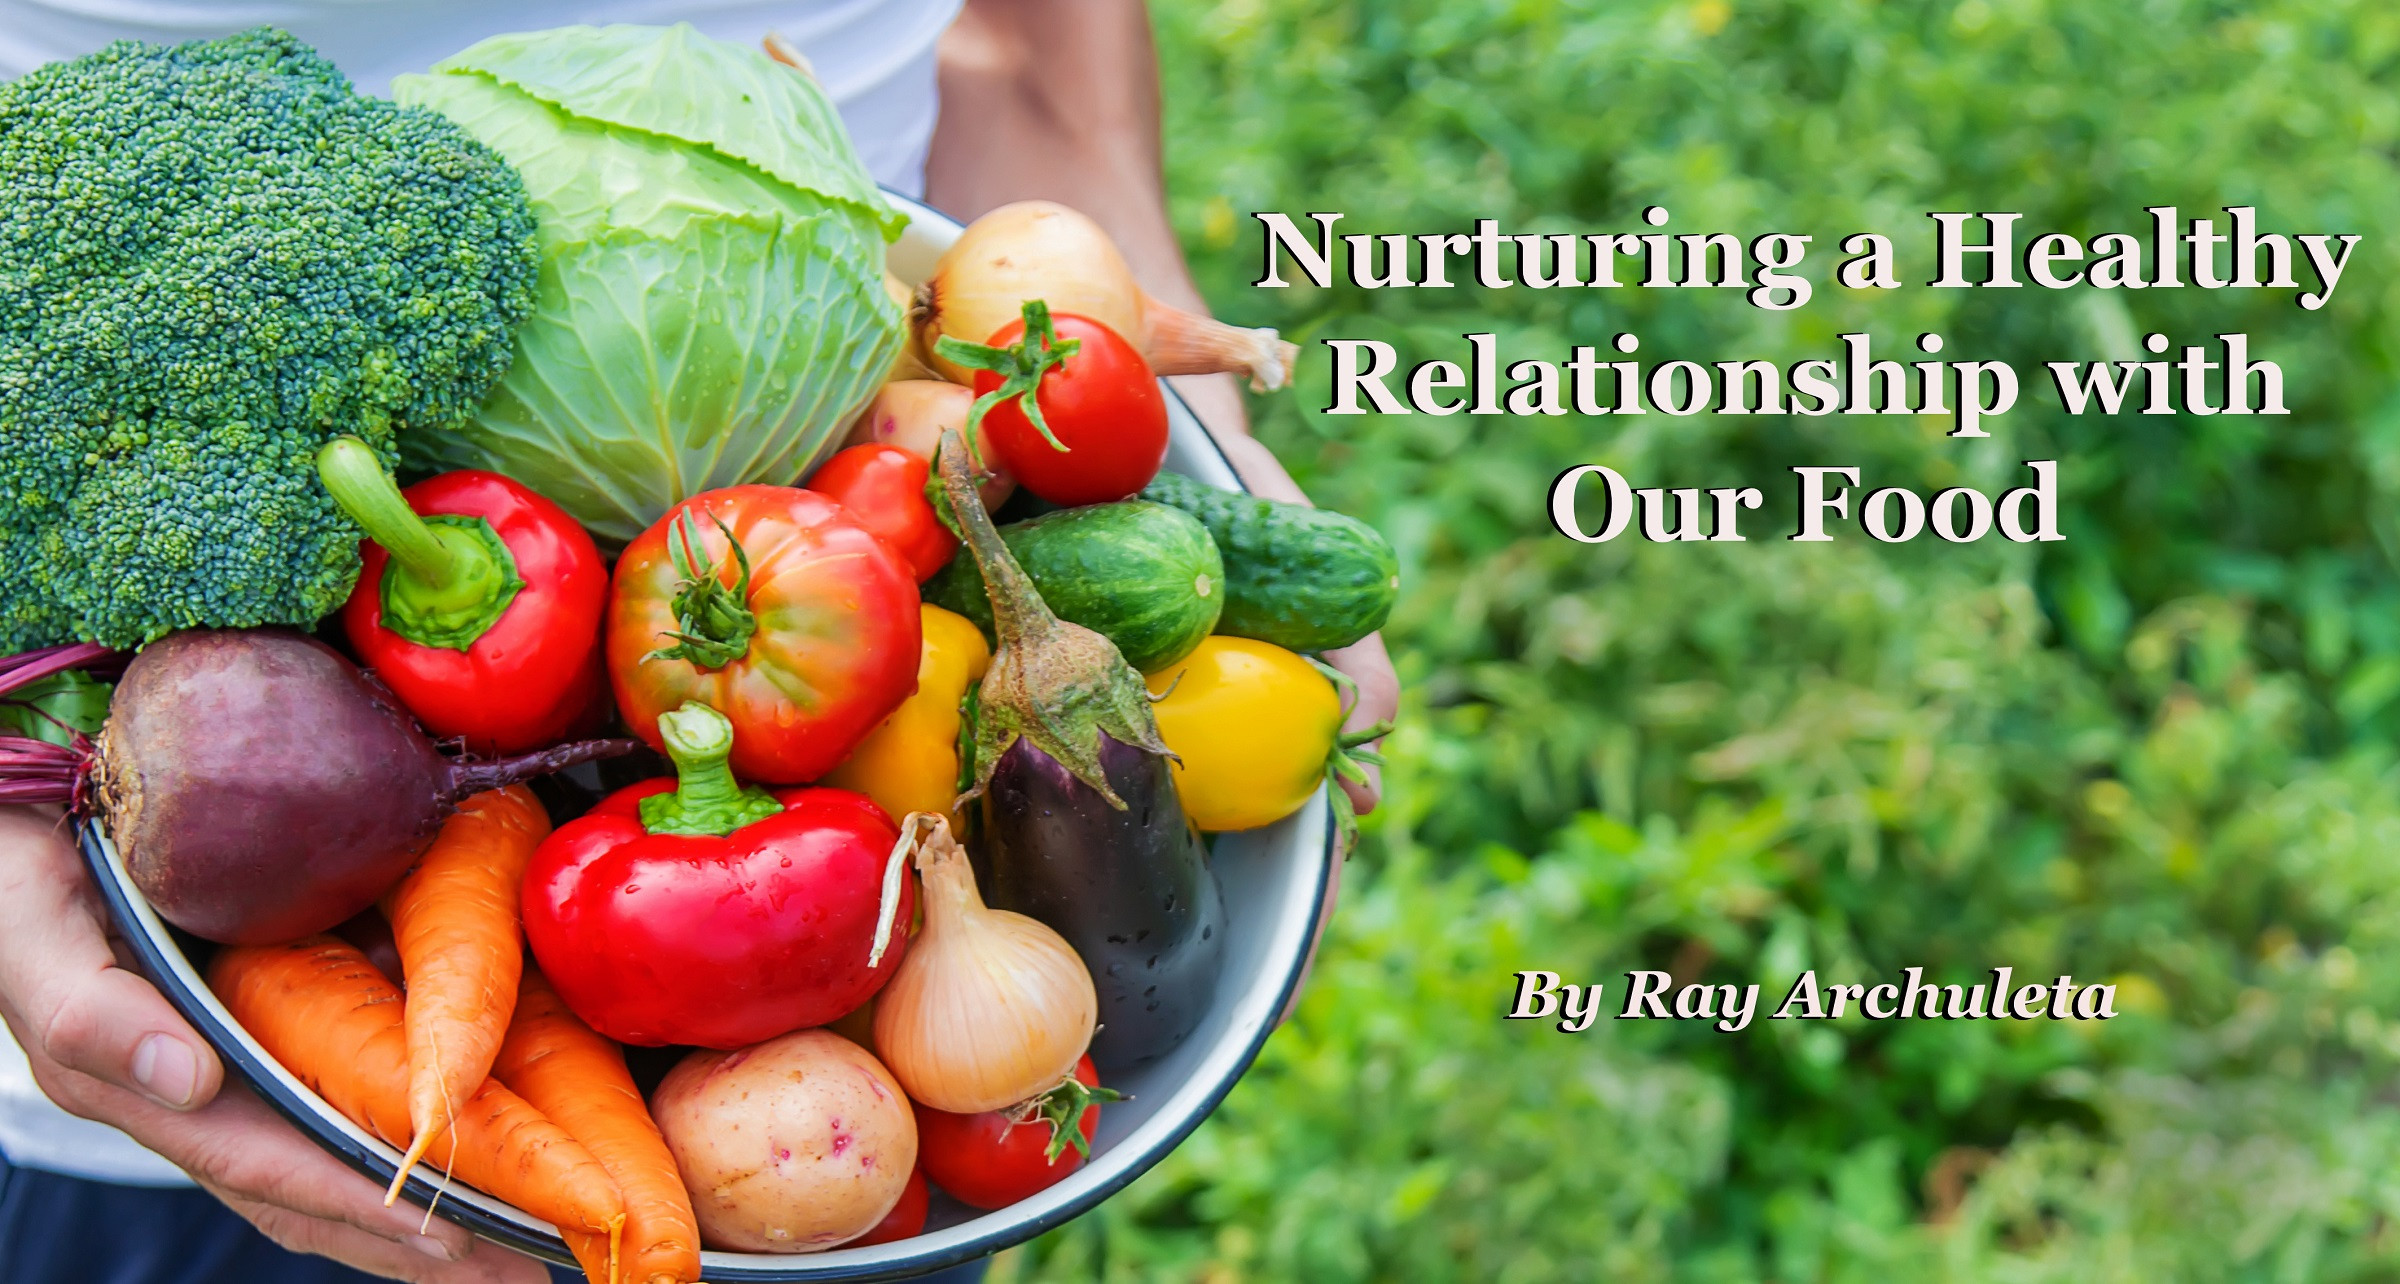 Nurturing a Healthy Relationship with Our Food